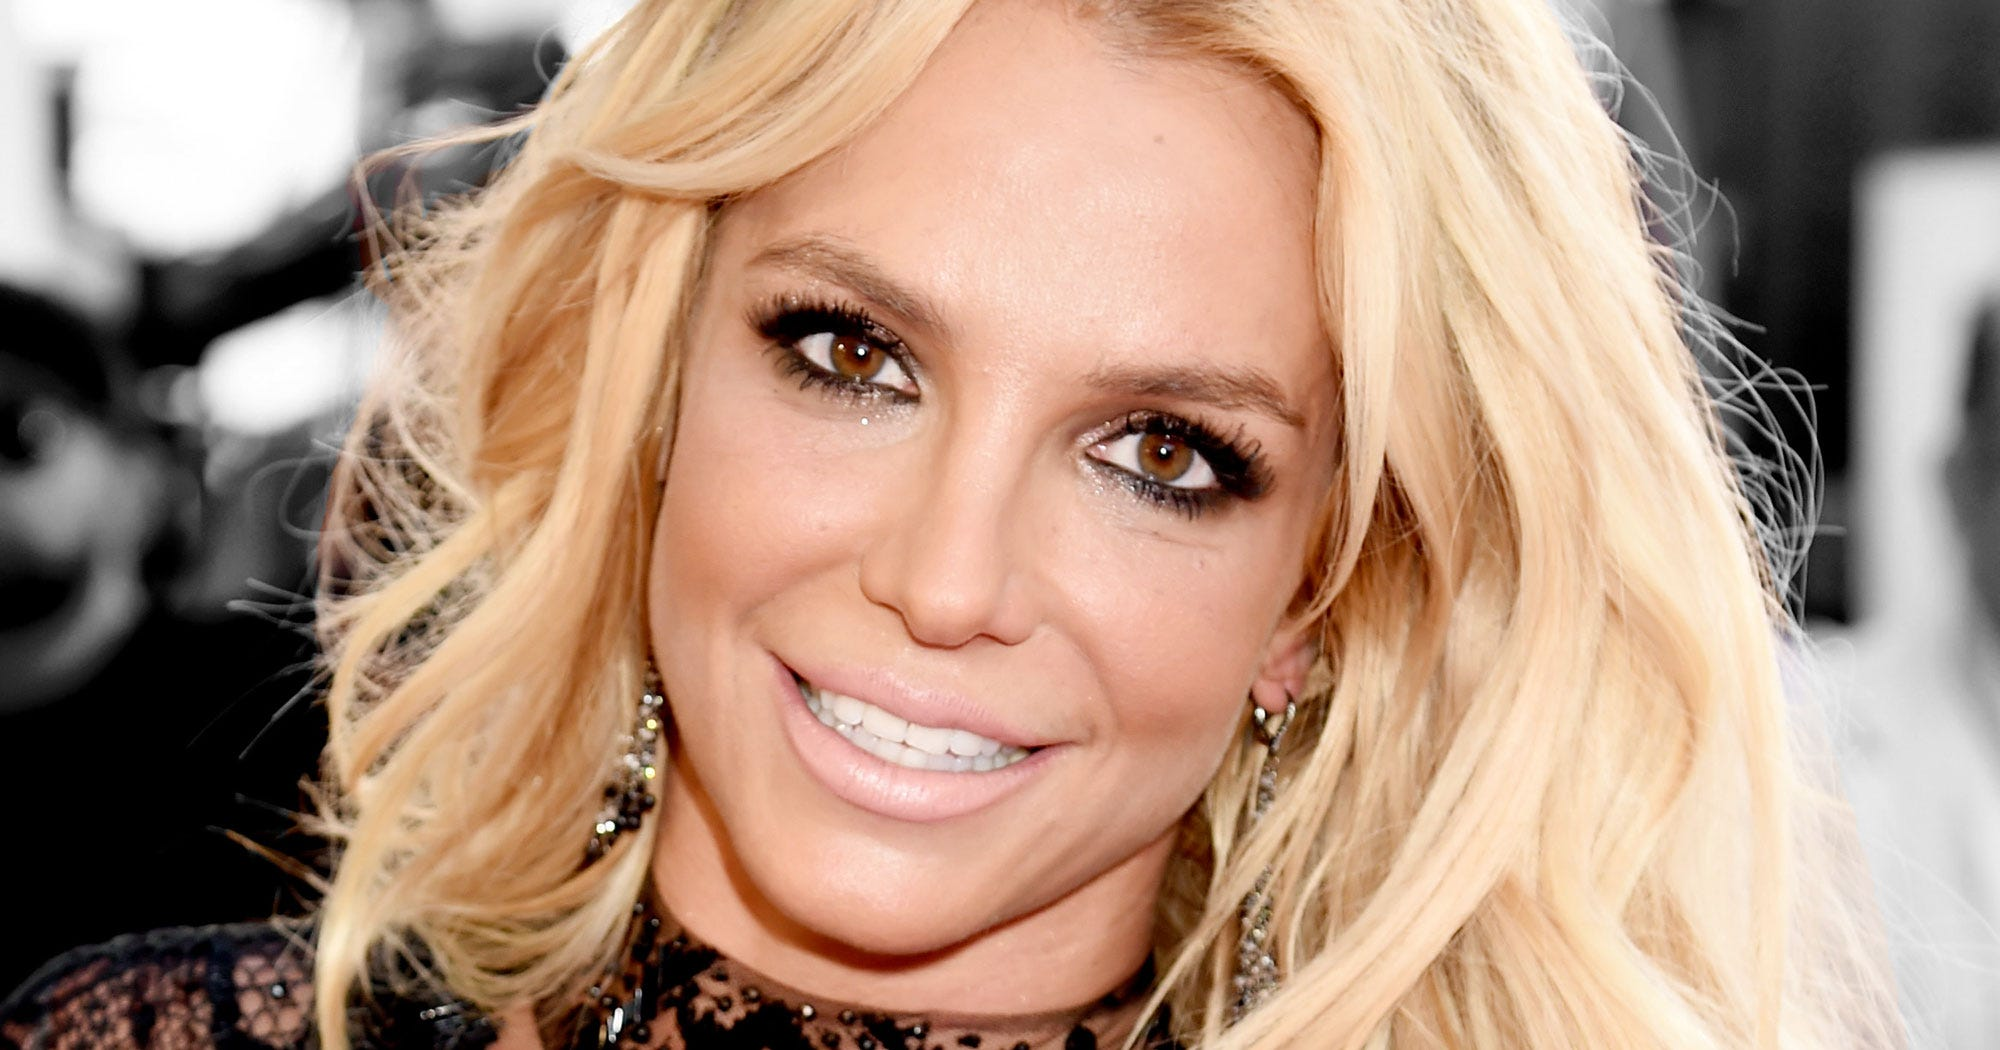 Beauty Girl In The World Wallpaper Britney Spears Photos Over The Years Hair Makeup Looks